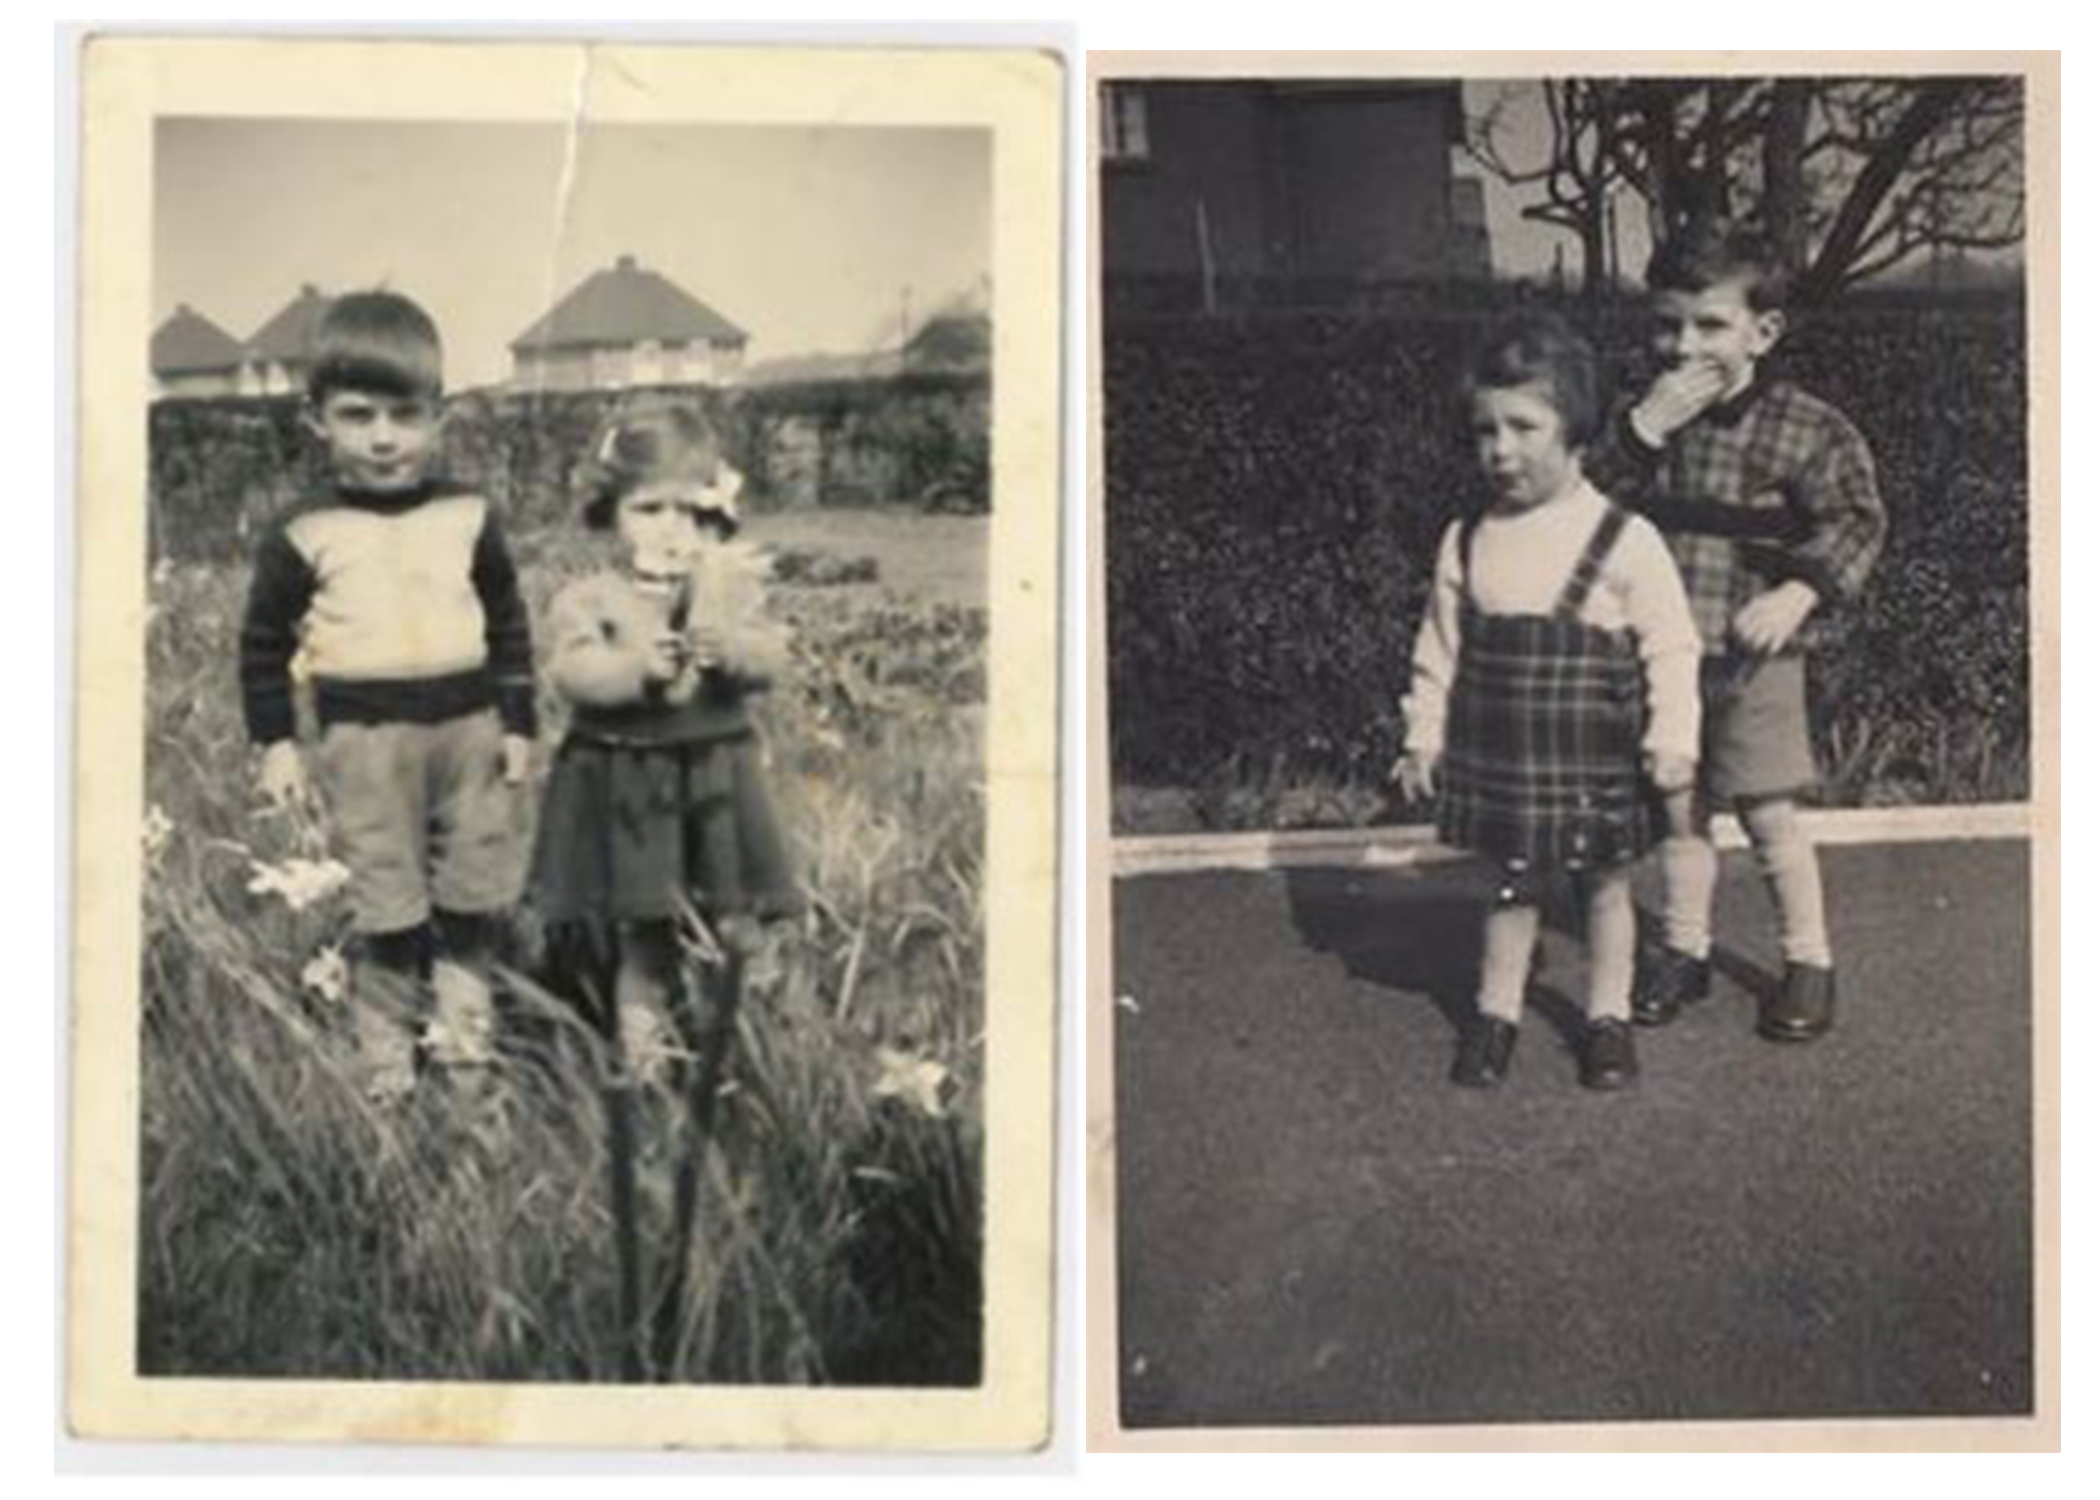 Siblings John and Jean as children in the 1960s